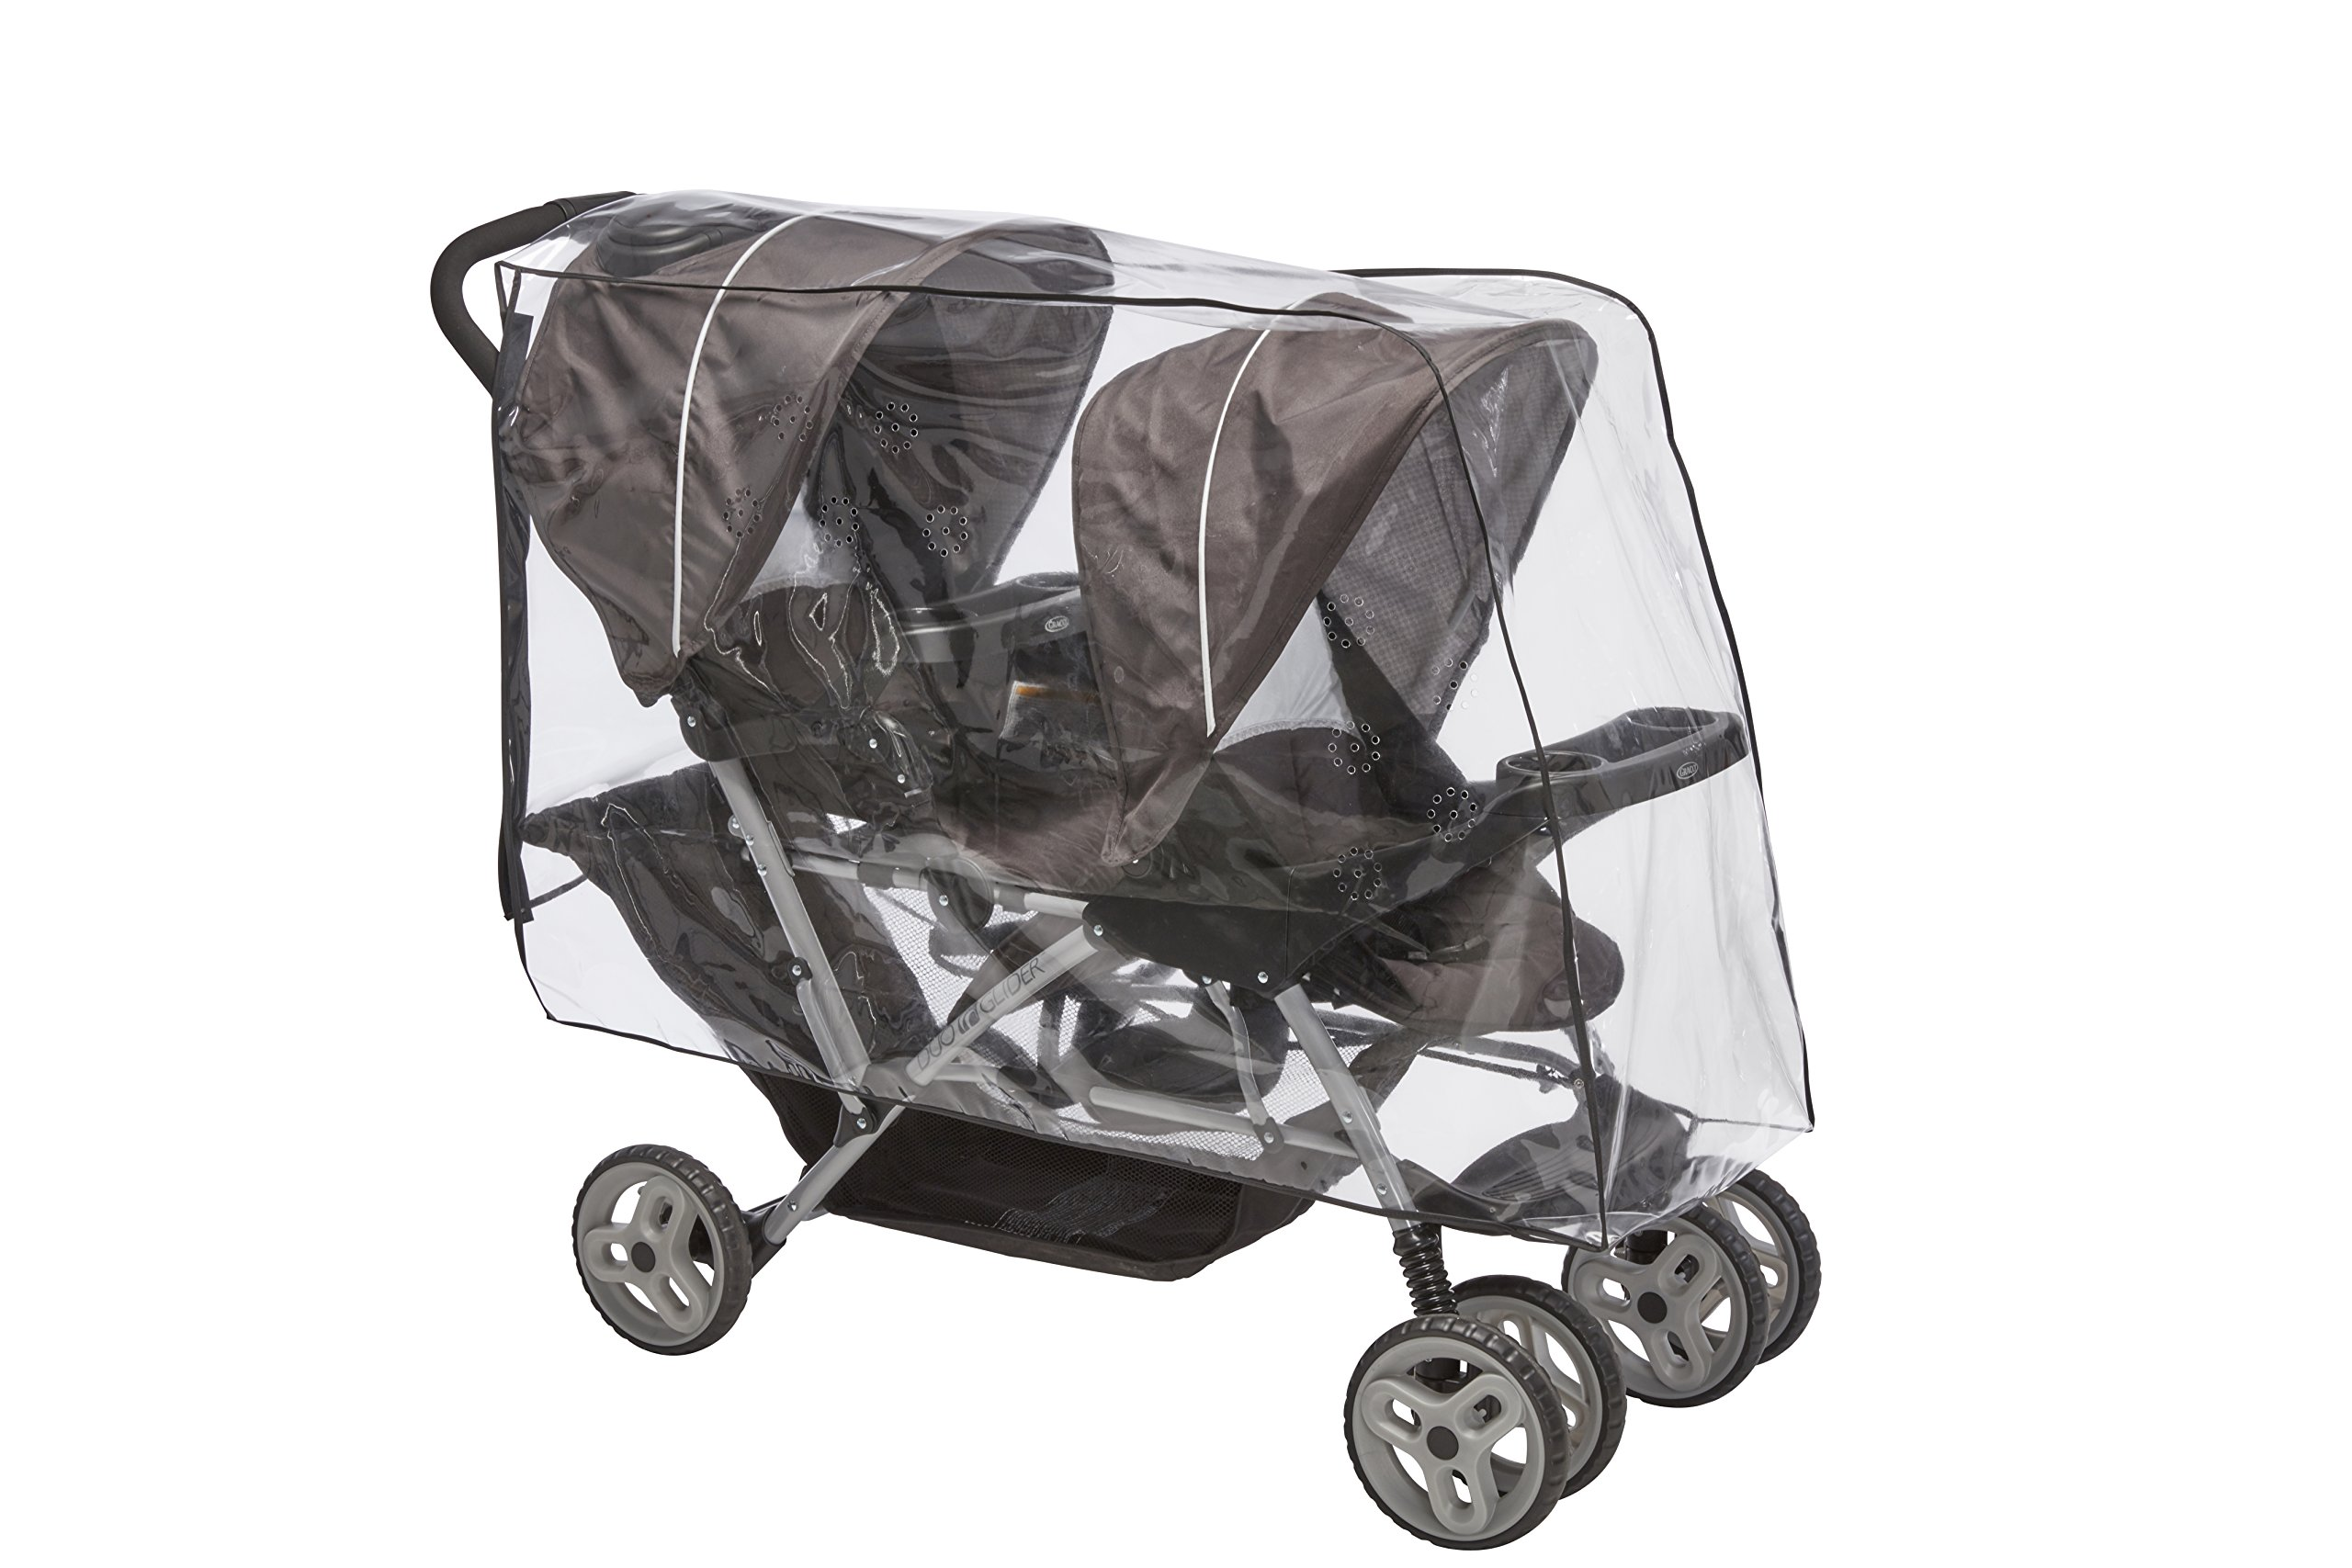 Sashas Premium Series Rain and Wind Cover for Graco DuoGlider Click Connect Stroller by Sasha Kiddie Products (Image #1)